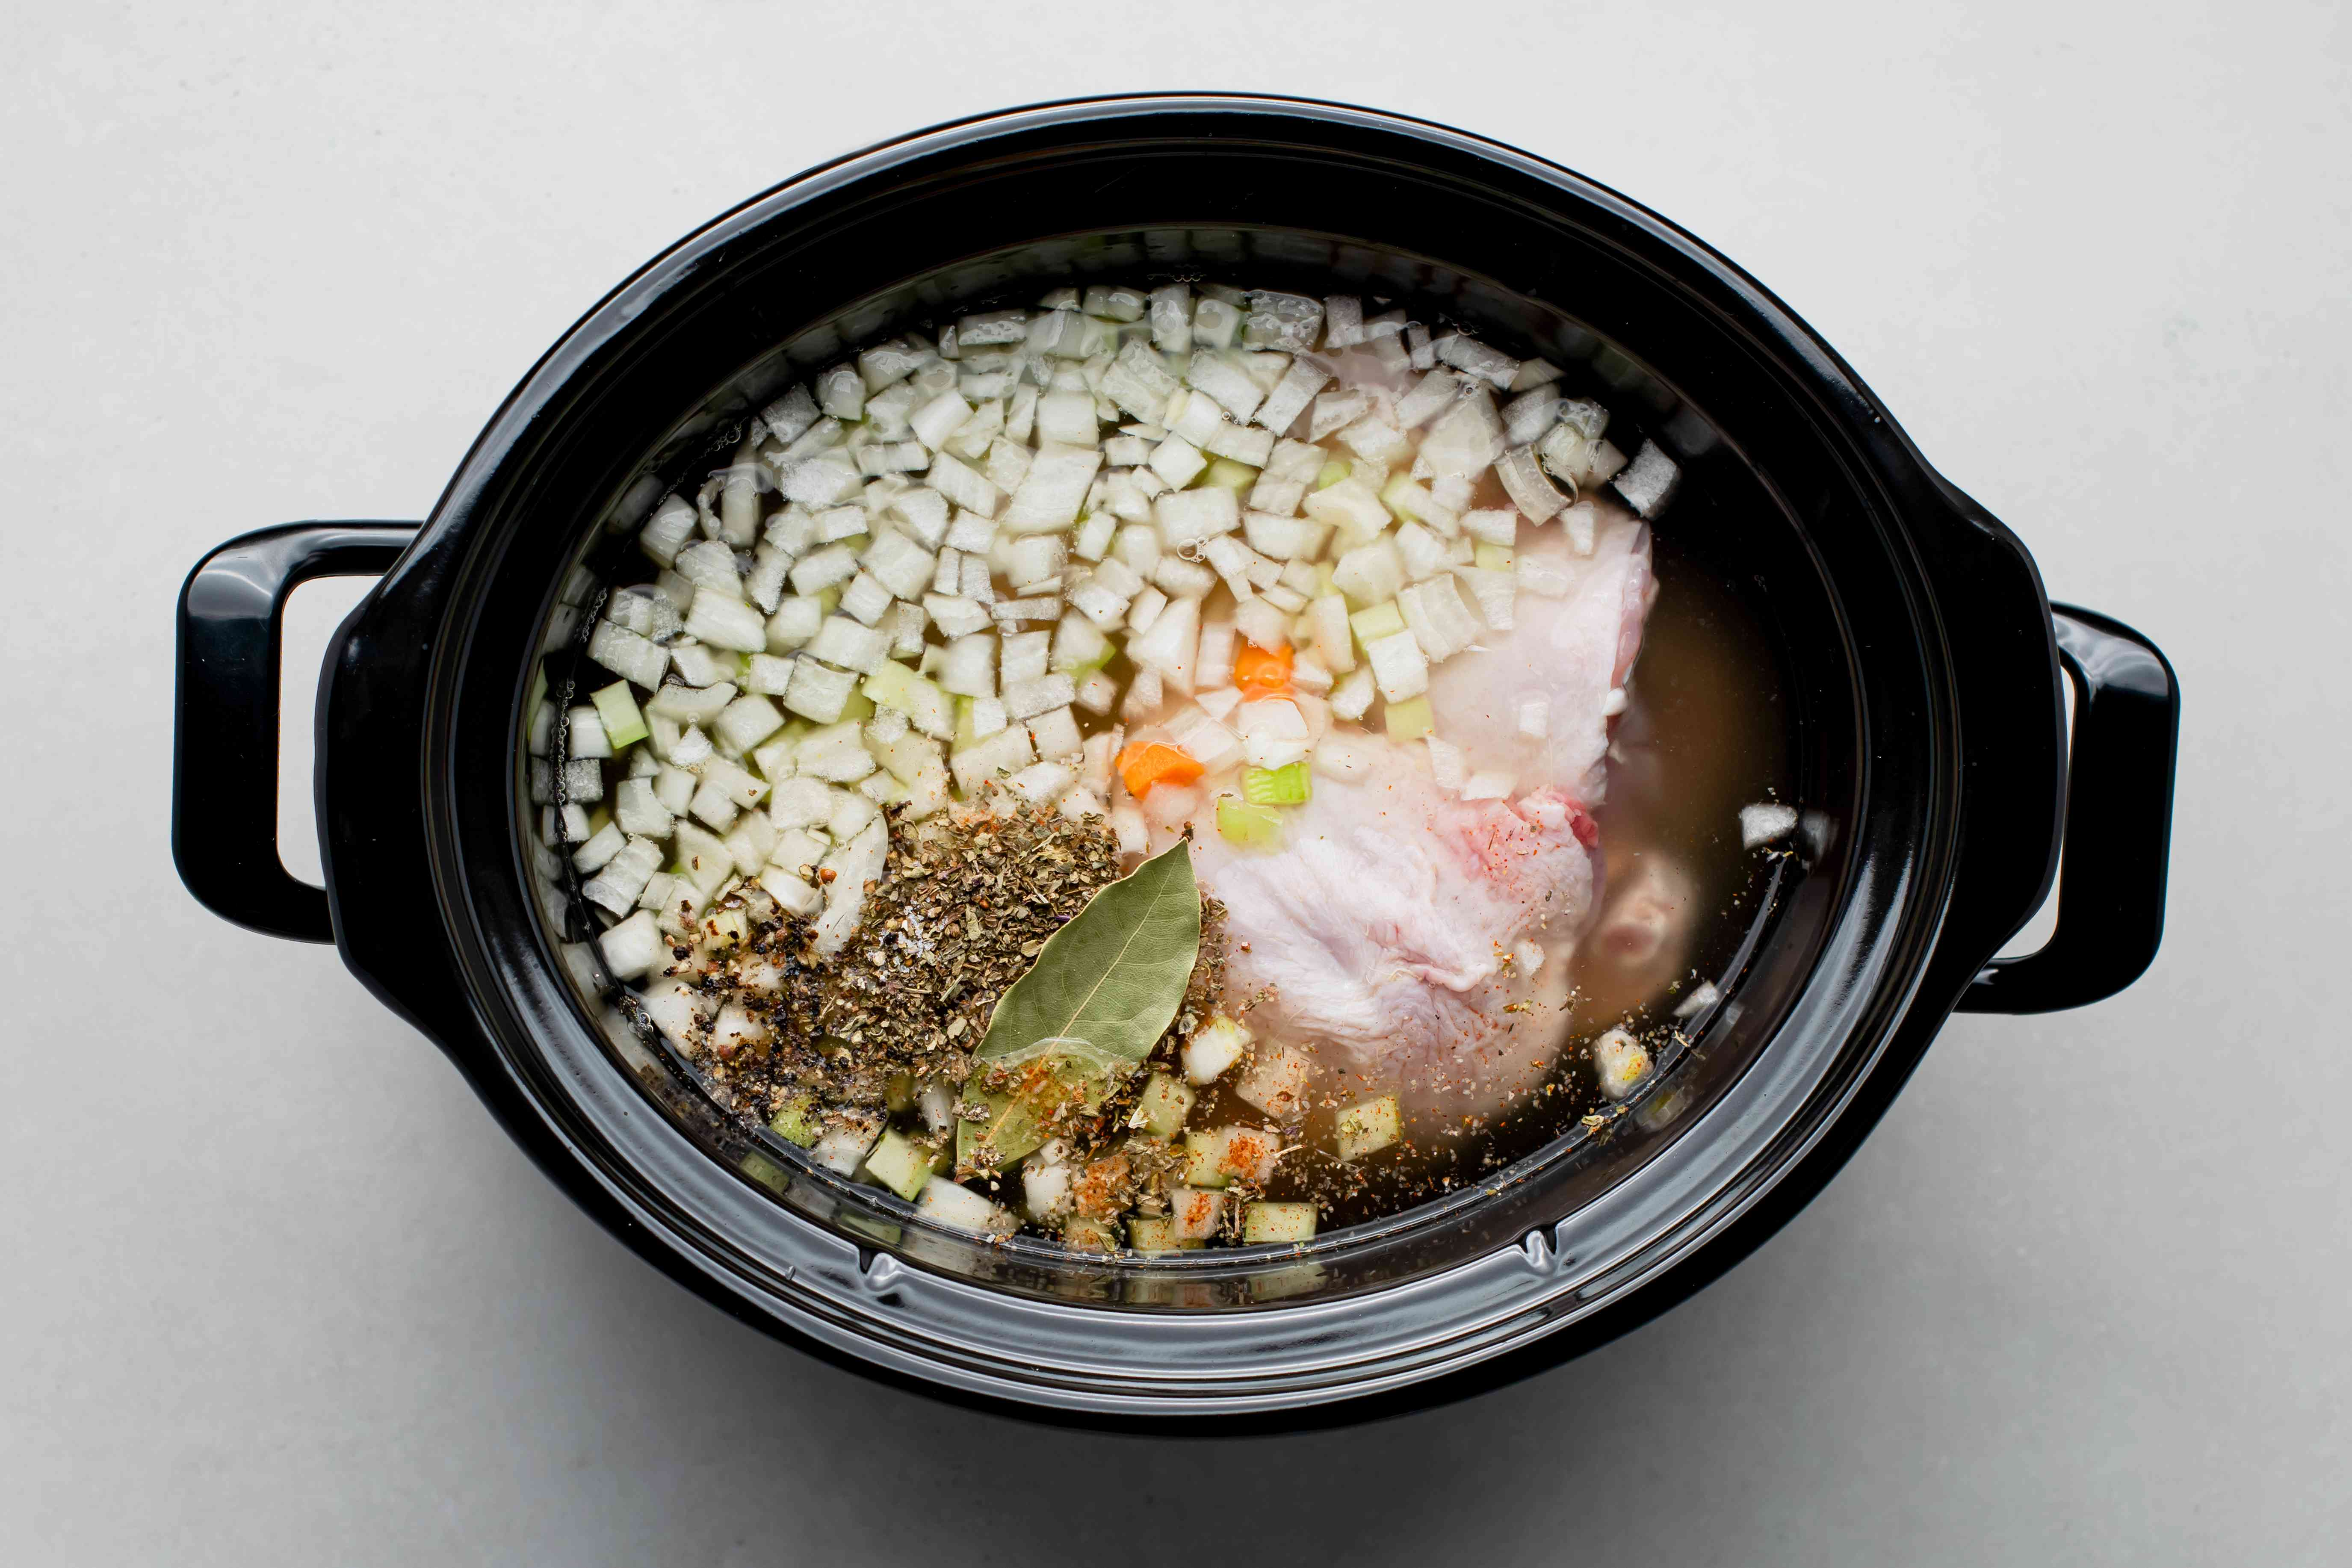 all of the ingredients for Crock Pot Chicken Noodle Soup (except the noodles) in a Crock Pot